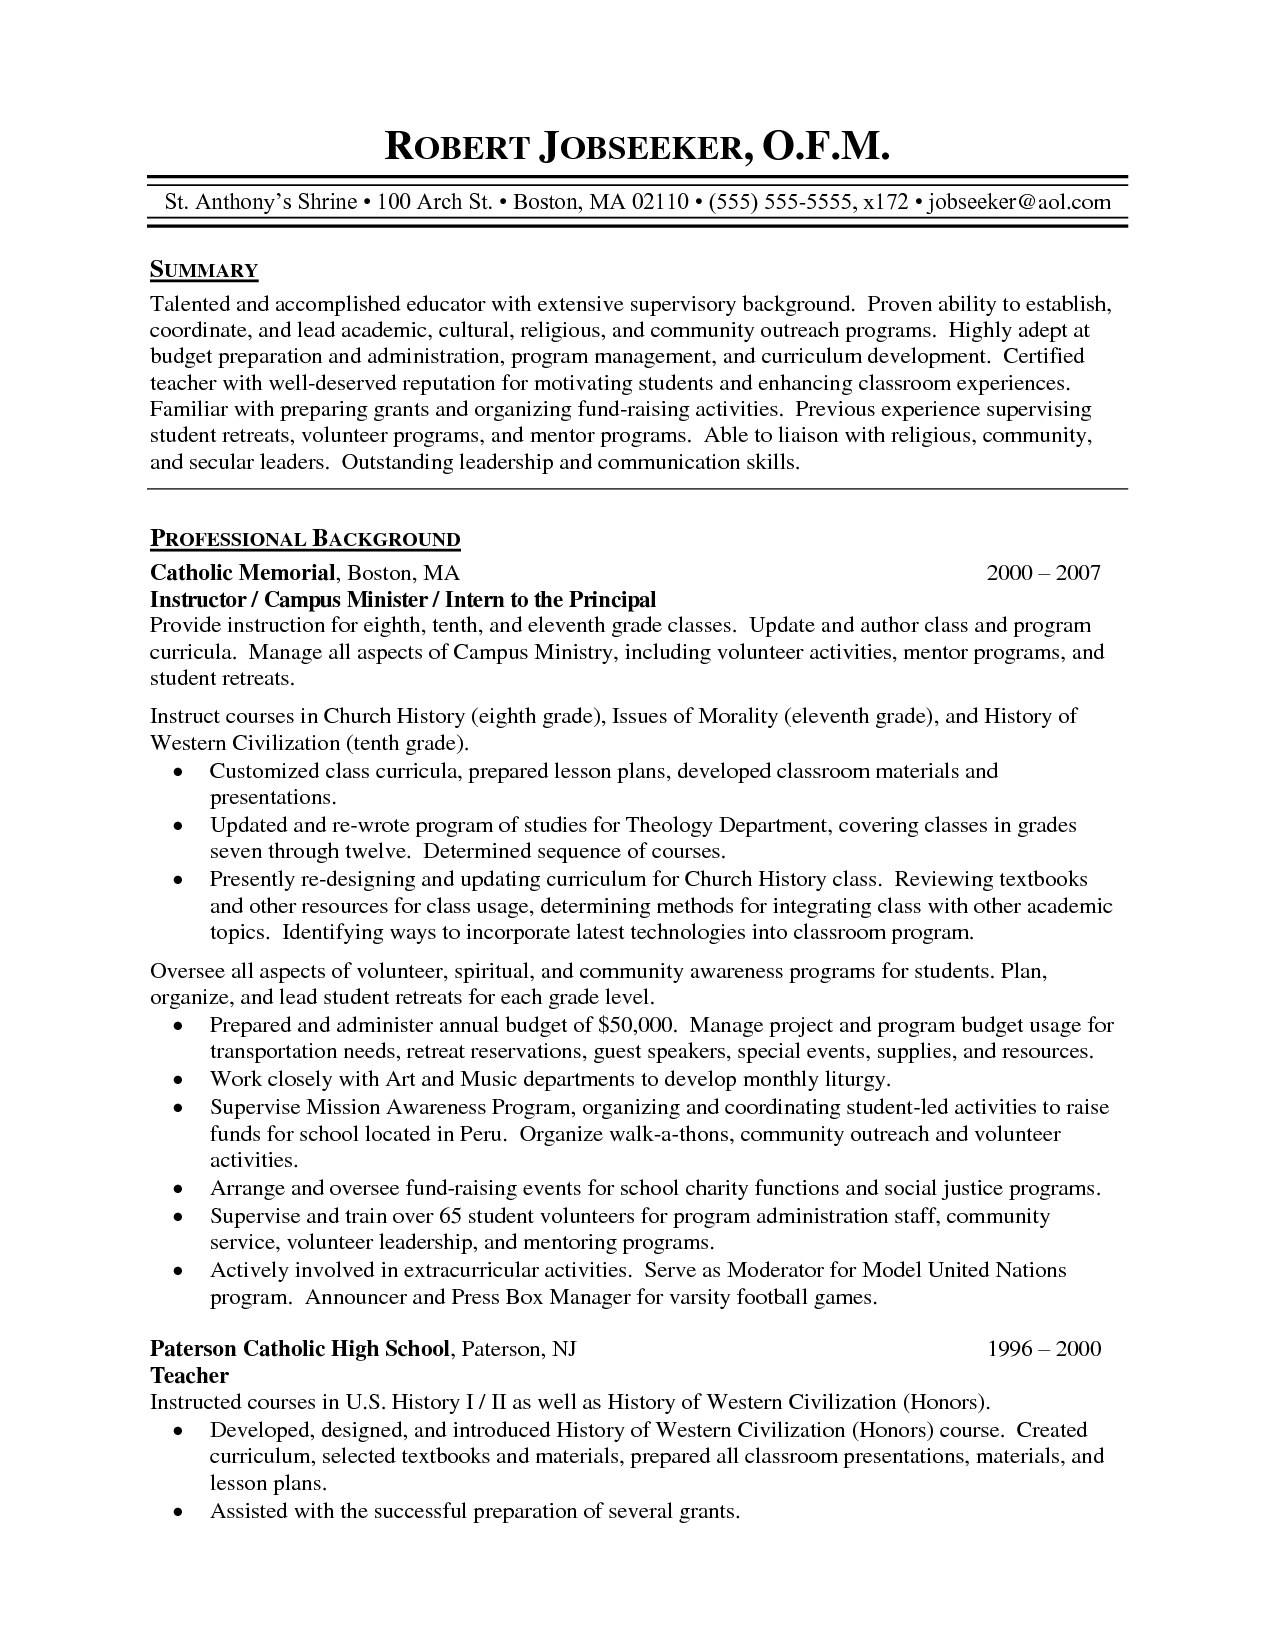 Sample High School Teacher Resume Perfect  Home Design Idea